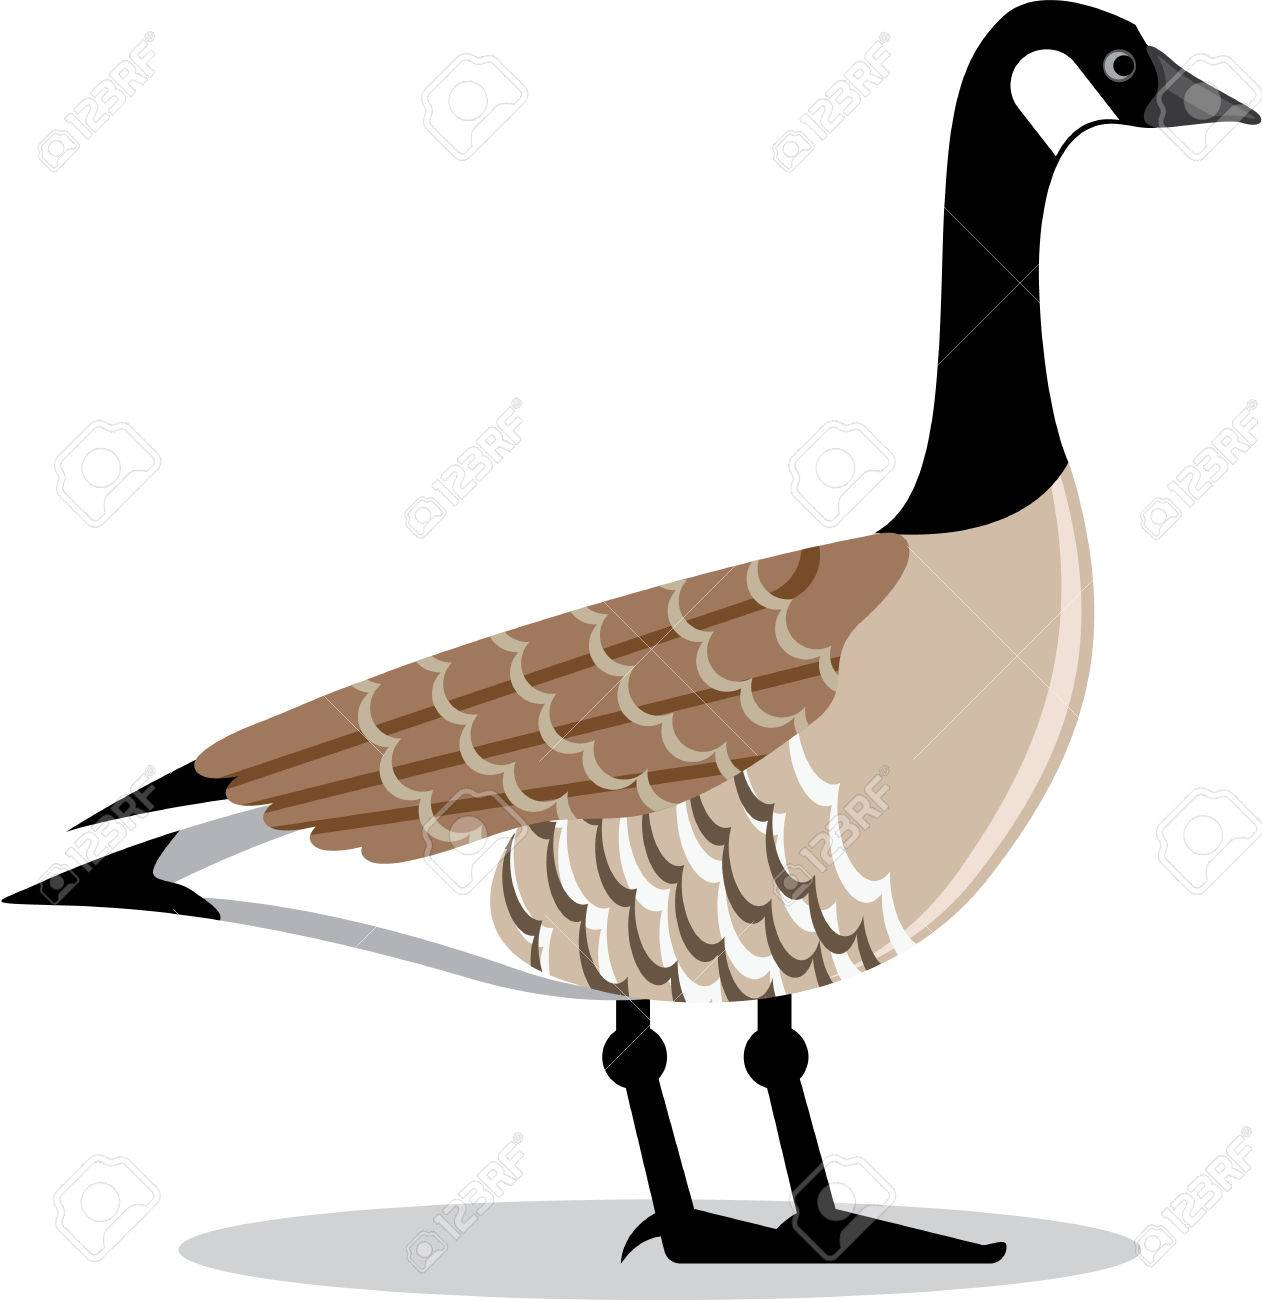 Brown Goose Vector Stylized Illustration Clip-art Image Stock Vector -  67756860